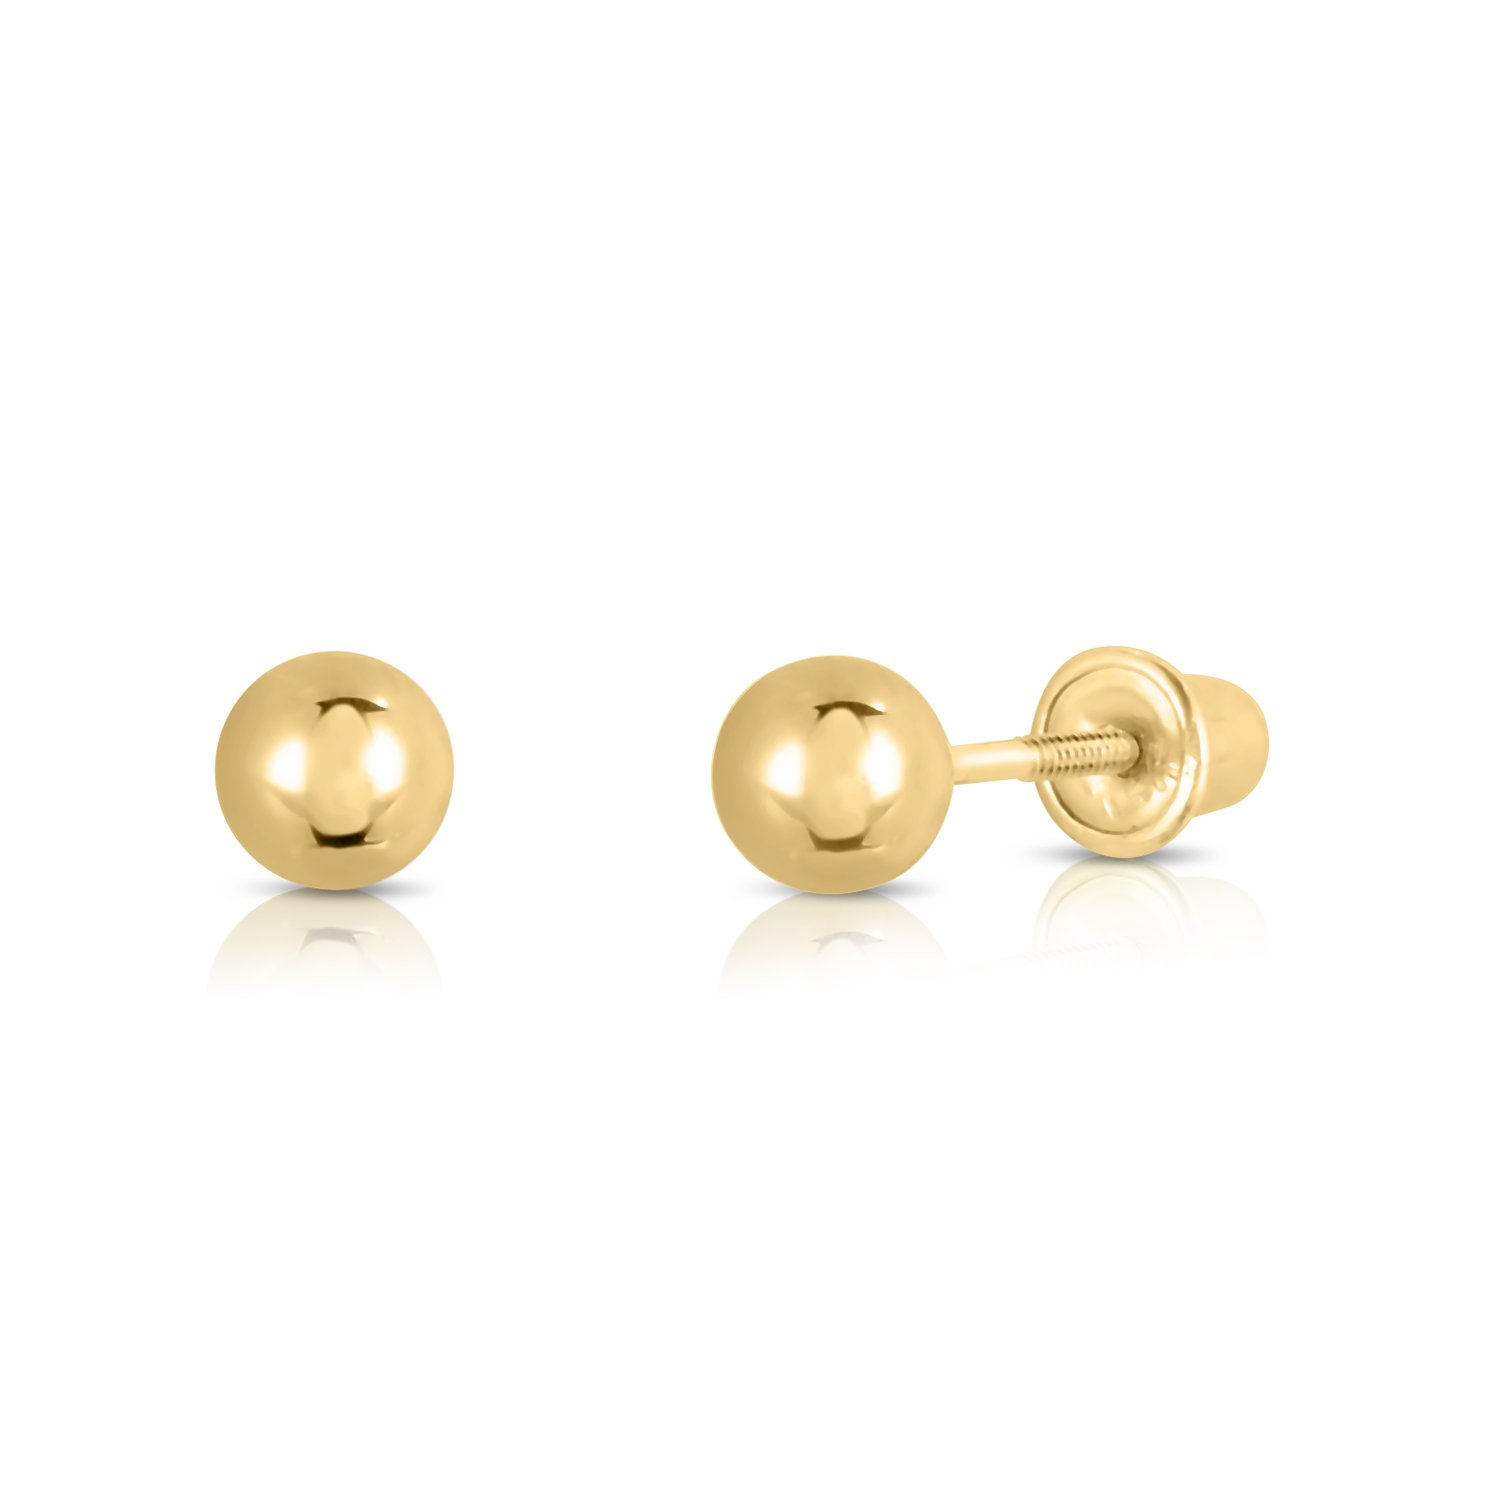 4c58a9a6b 14k Yellow Gold Ball Stud Earrings with Secure Screw-backs NY Gold and  Silver Inc YGB-SC